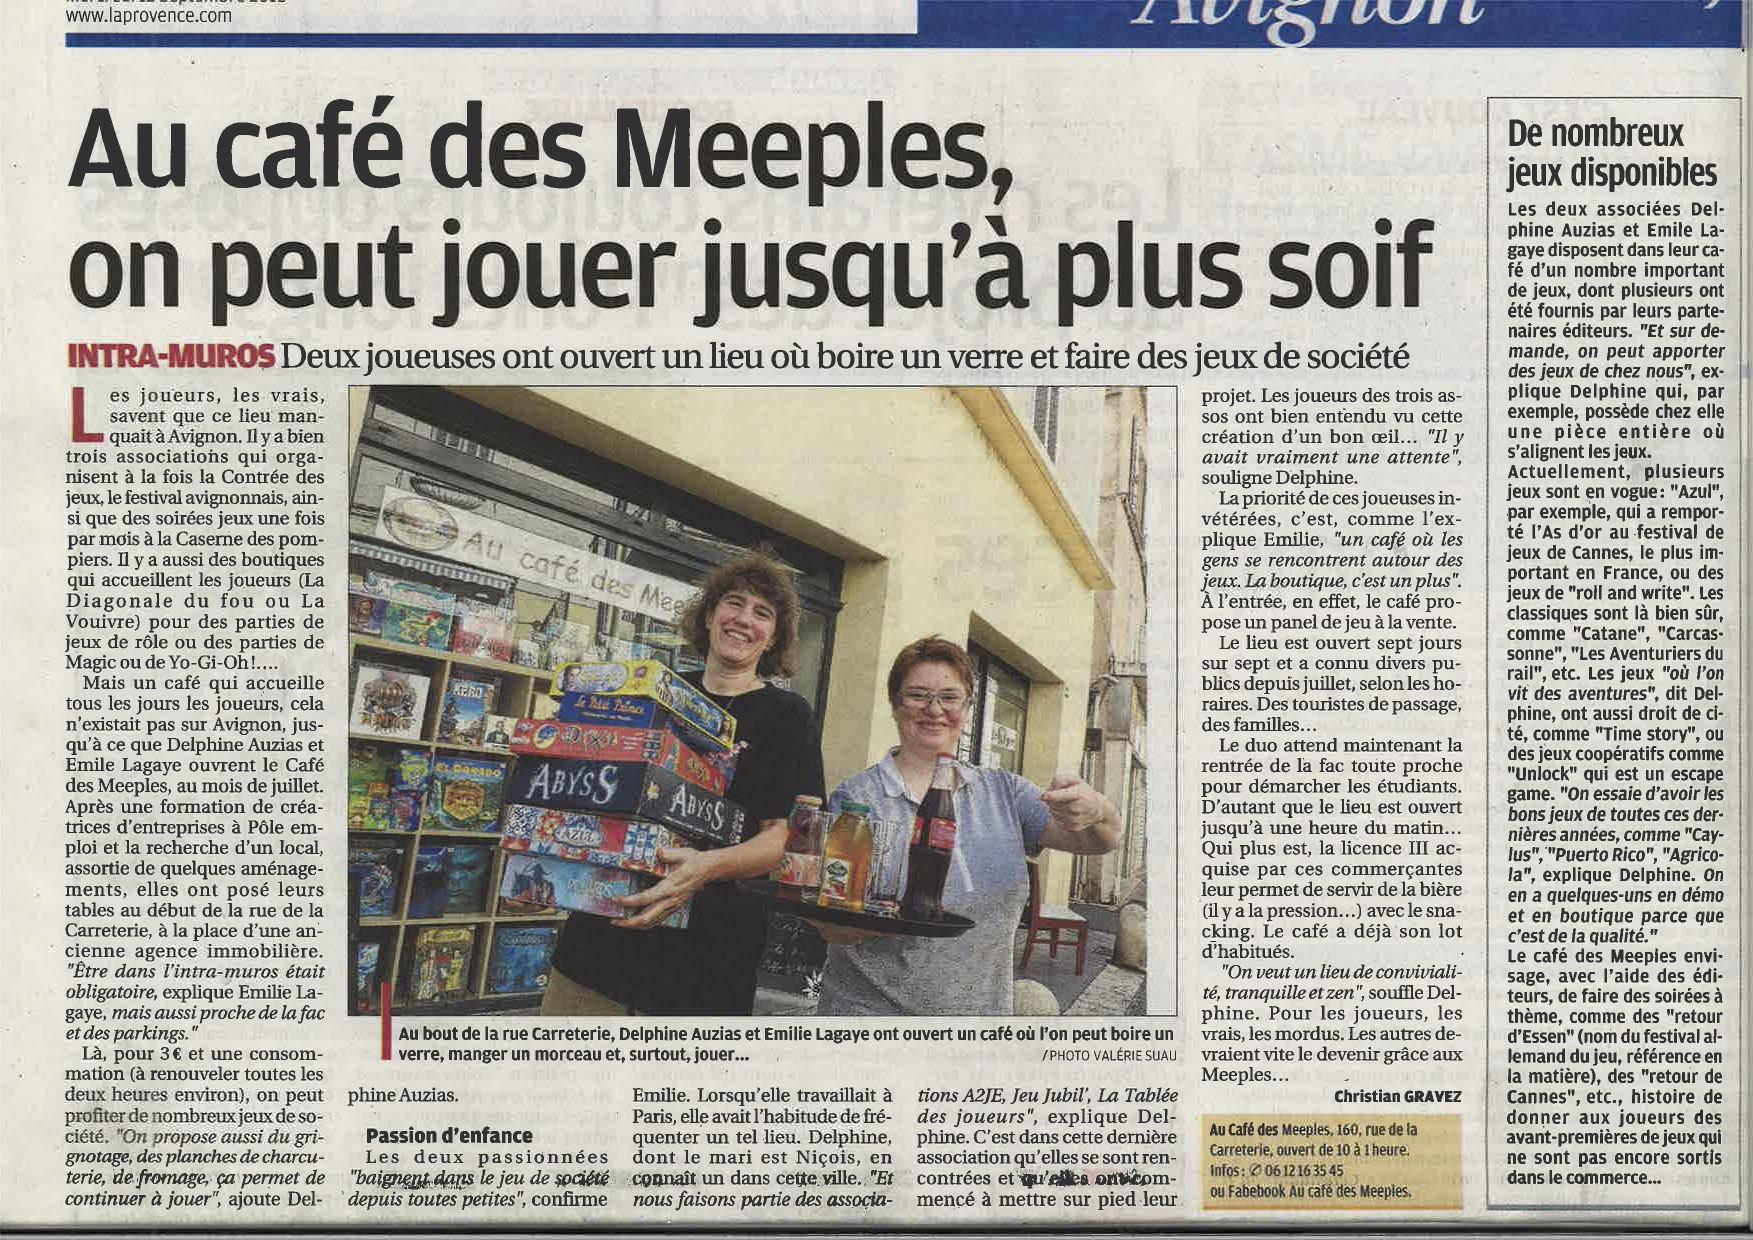 Meeple_cafe___avignon_1209_LAPROVENCE.jpg